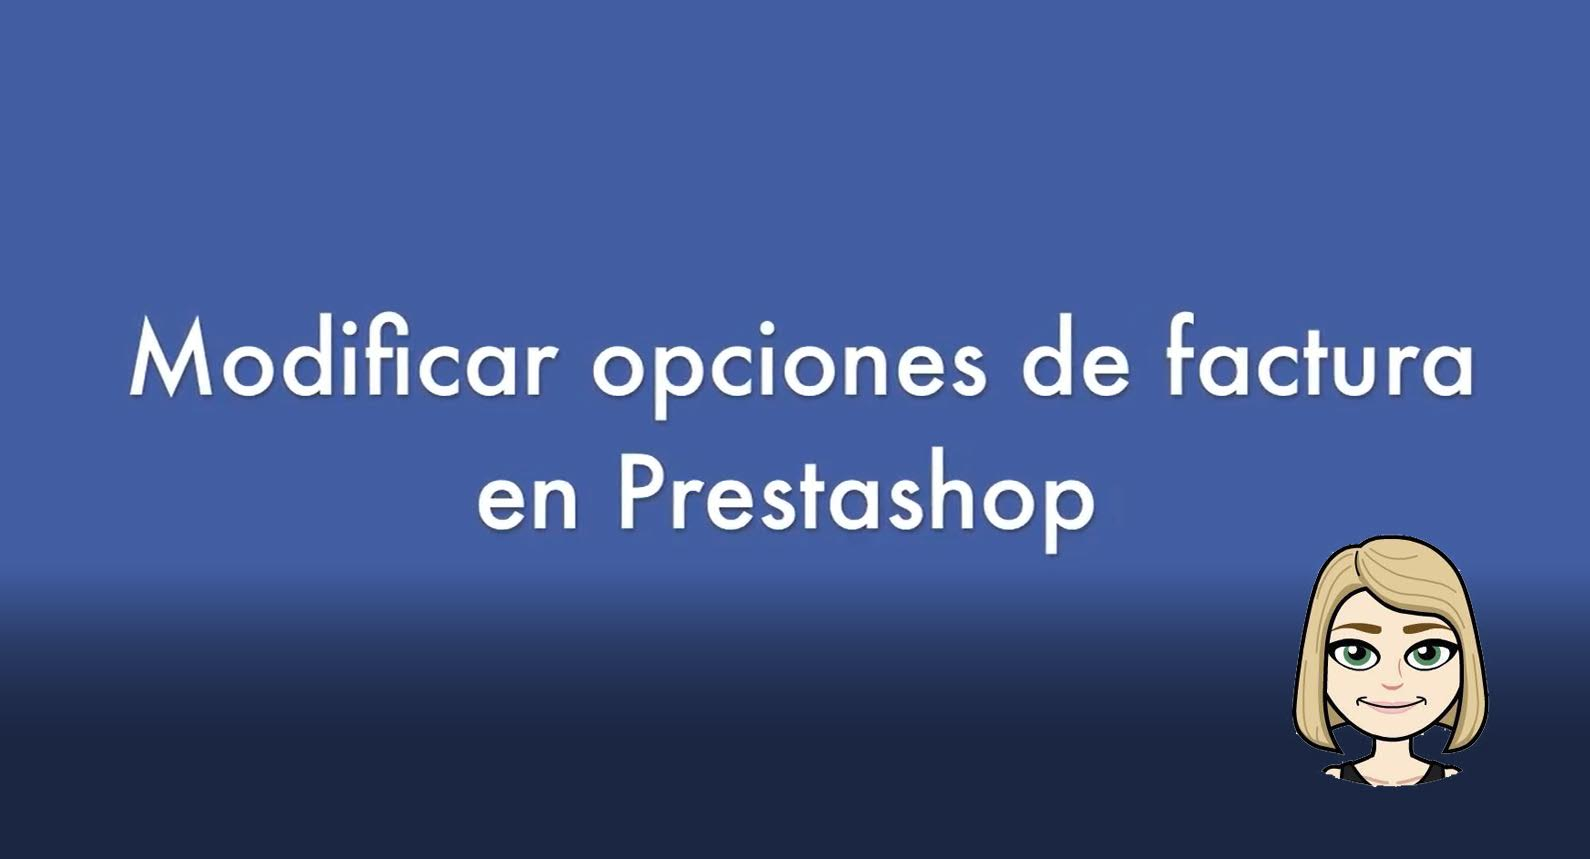 modificar funciones de factura en prestashop